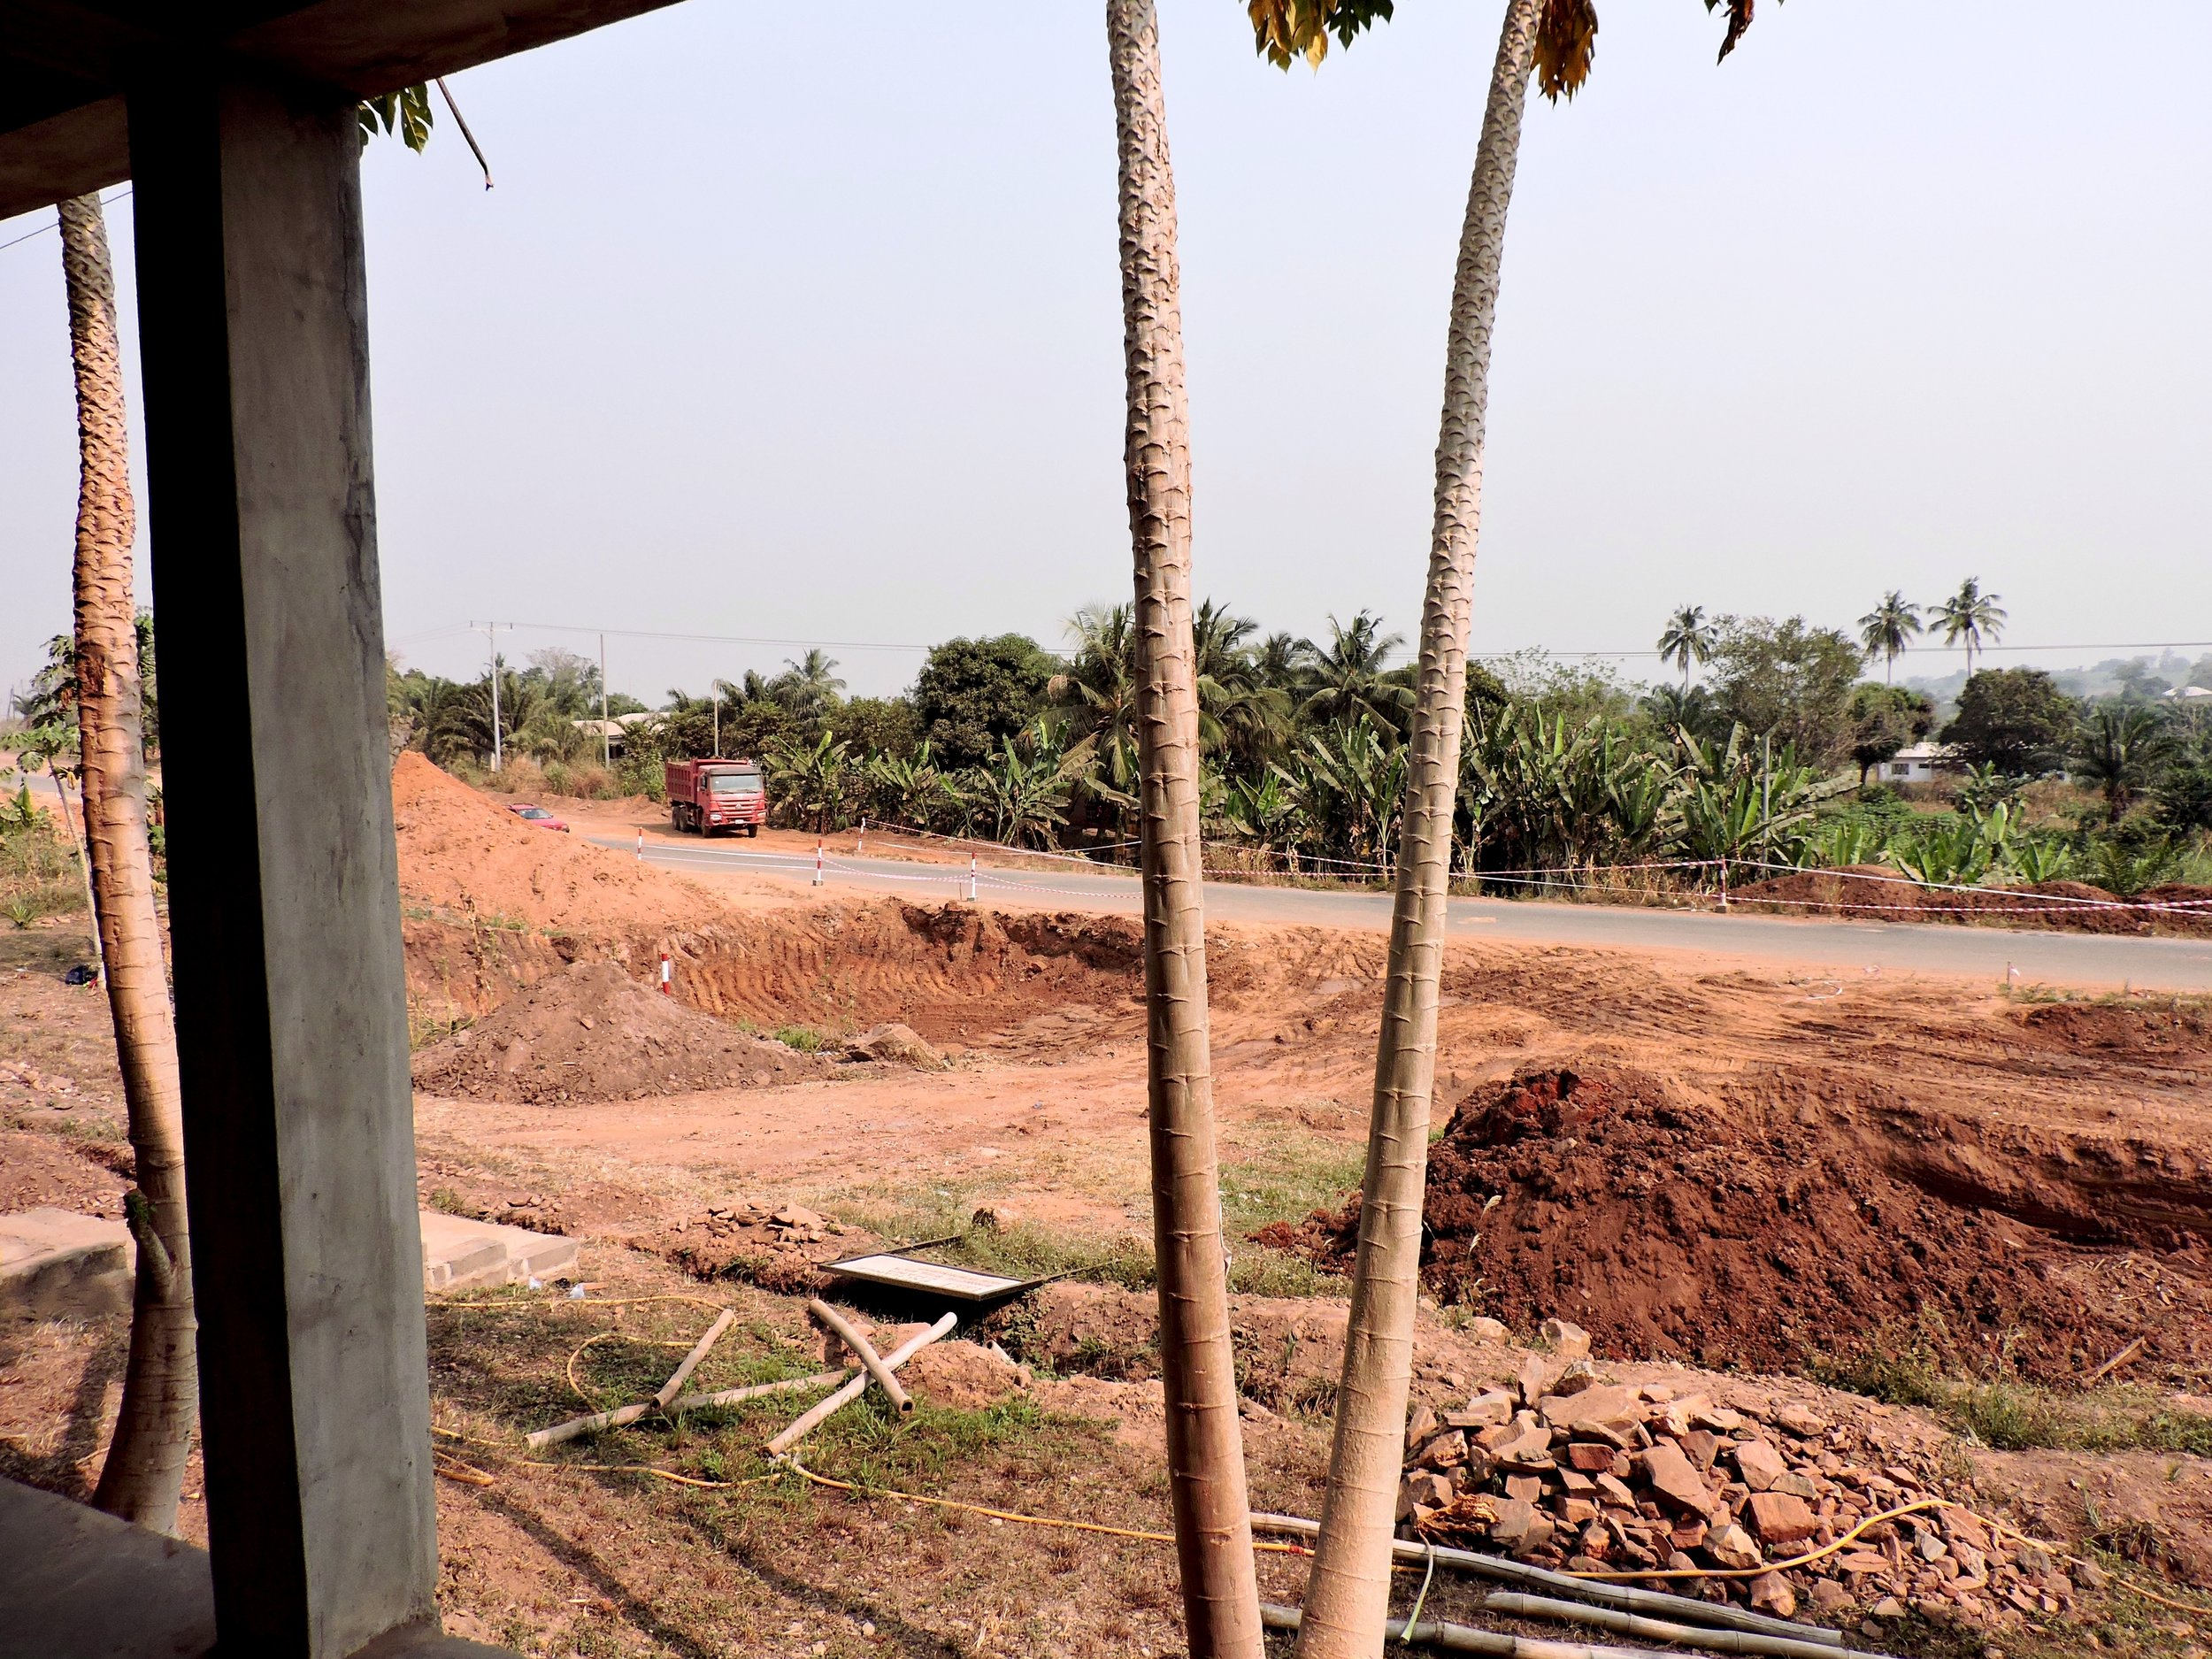 A view of the two holes dug for the road expansion in front of the VEG compound